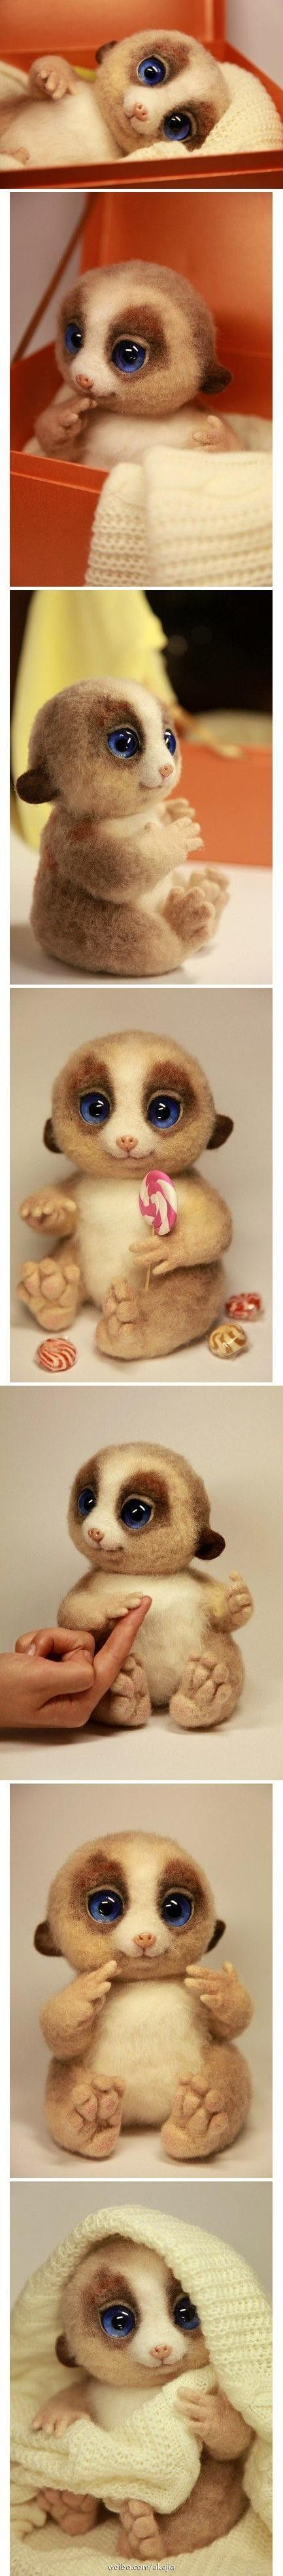 Needle Felted by Akajai - This is excellent - love the detail around the eyes.